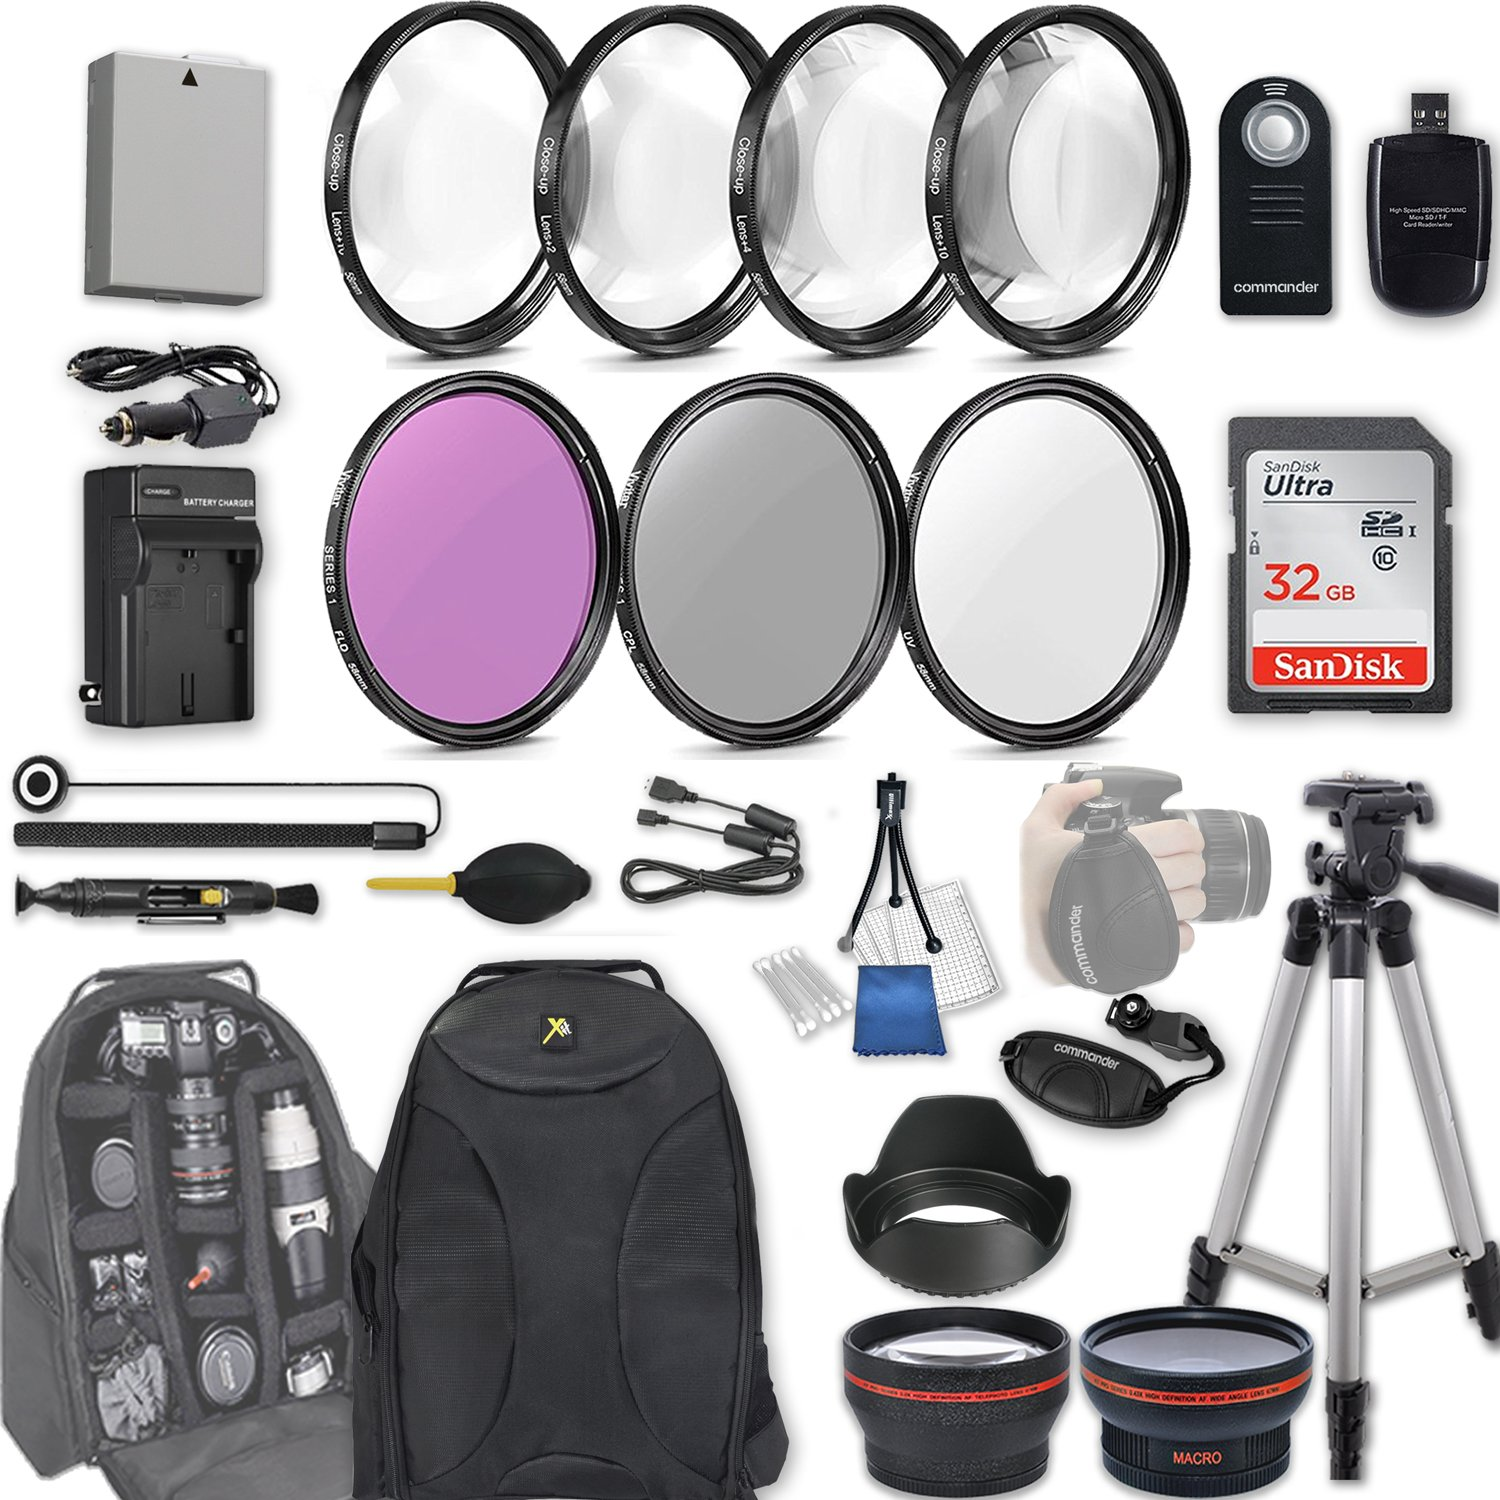 58mm 28 Pc Accessory Kit for Canon EOS Rebel T3i, T5i, 300D, 700D DSLRs with 0.43x Wide Angle Lens, 2.2x Telephoto Lens, 32GB SD, Filter & Macro Kits, Backpack Case, and More by 33rd Street